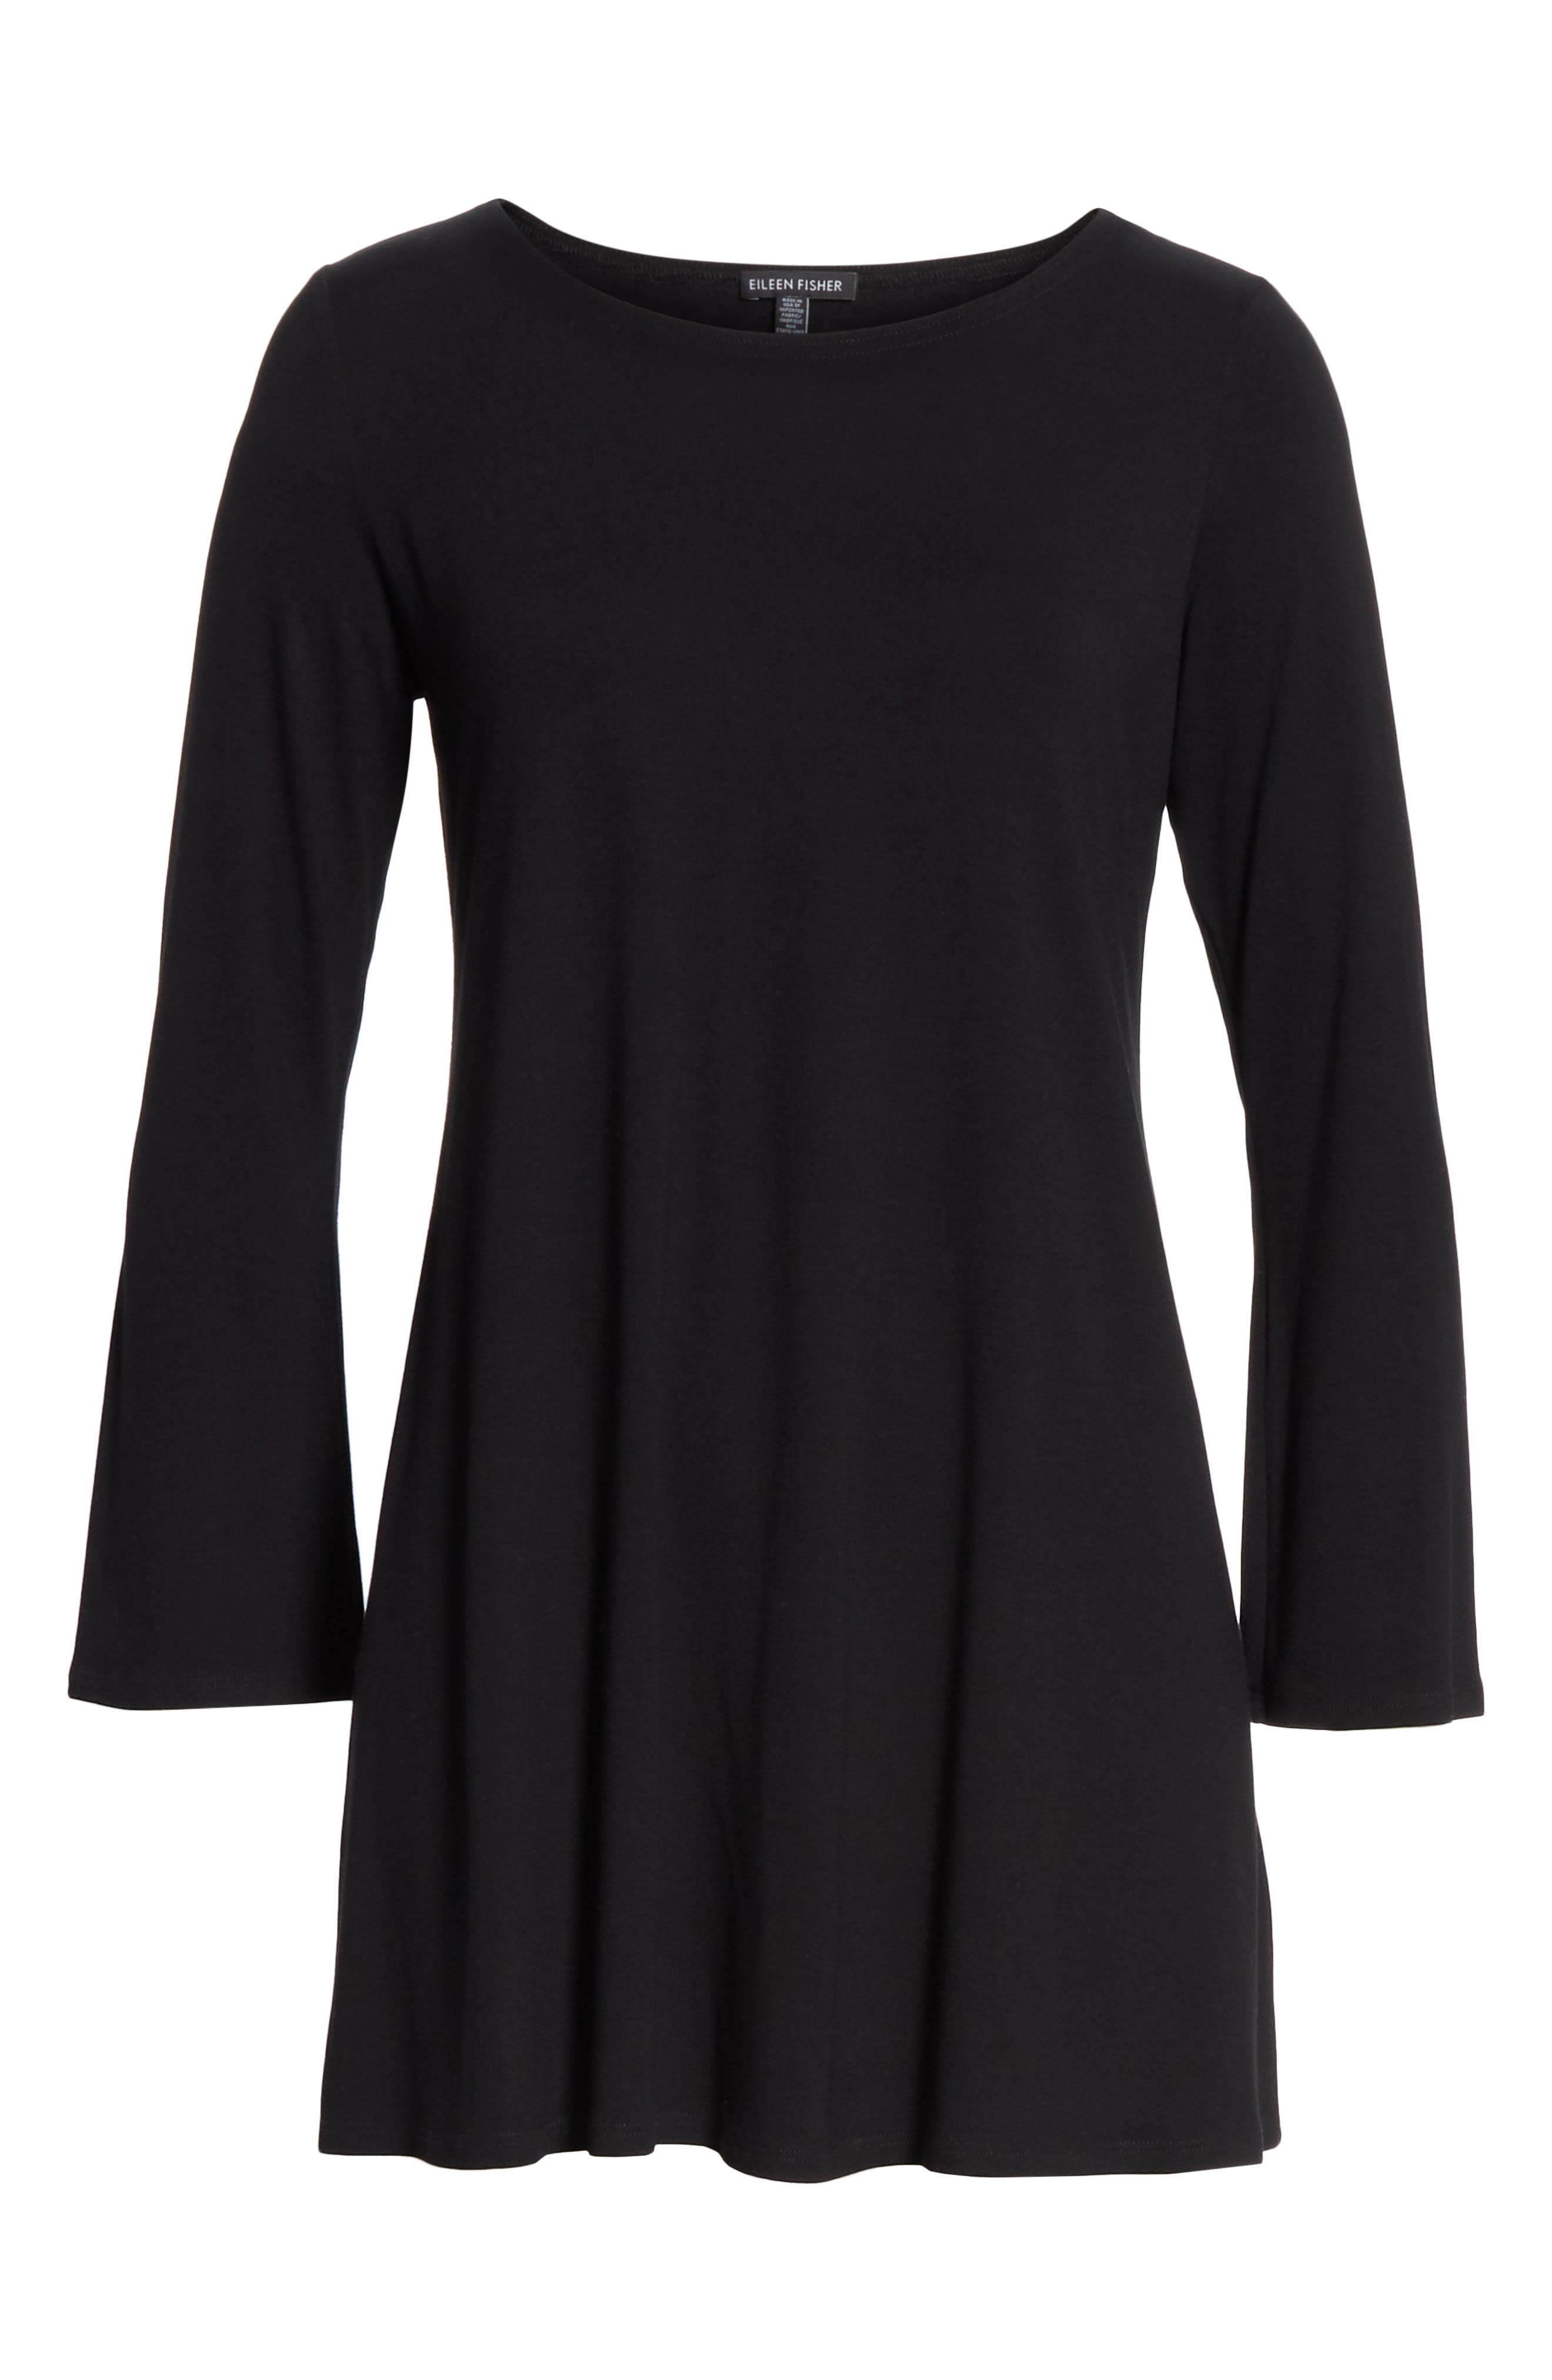 EILEEN FISHER, Jewel Neck Tunic Top, Alternate thumbnail 6, color, 001